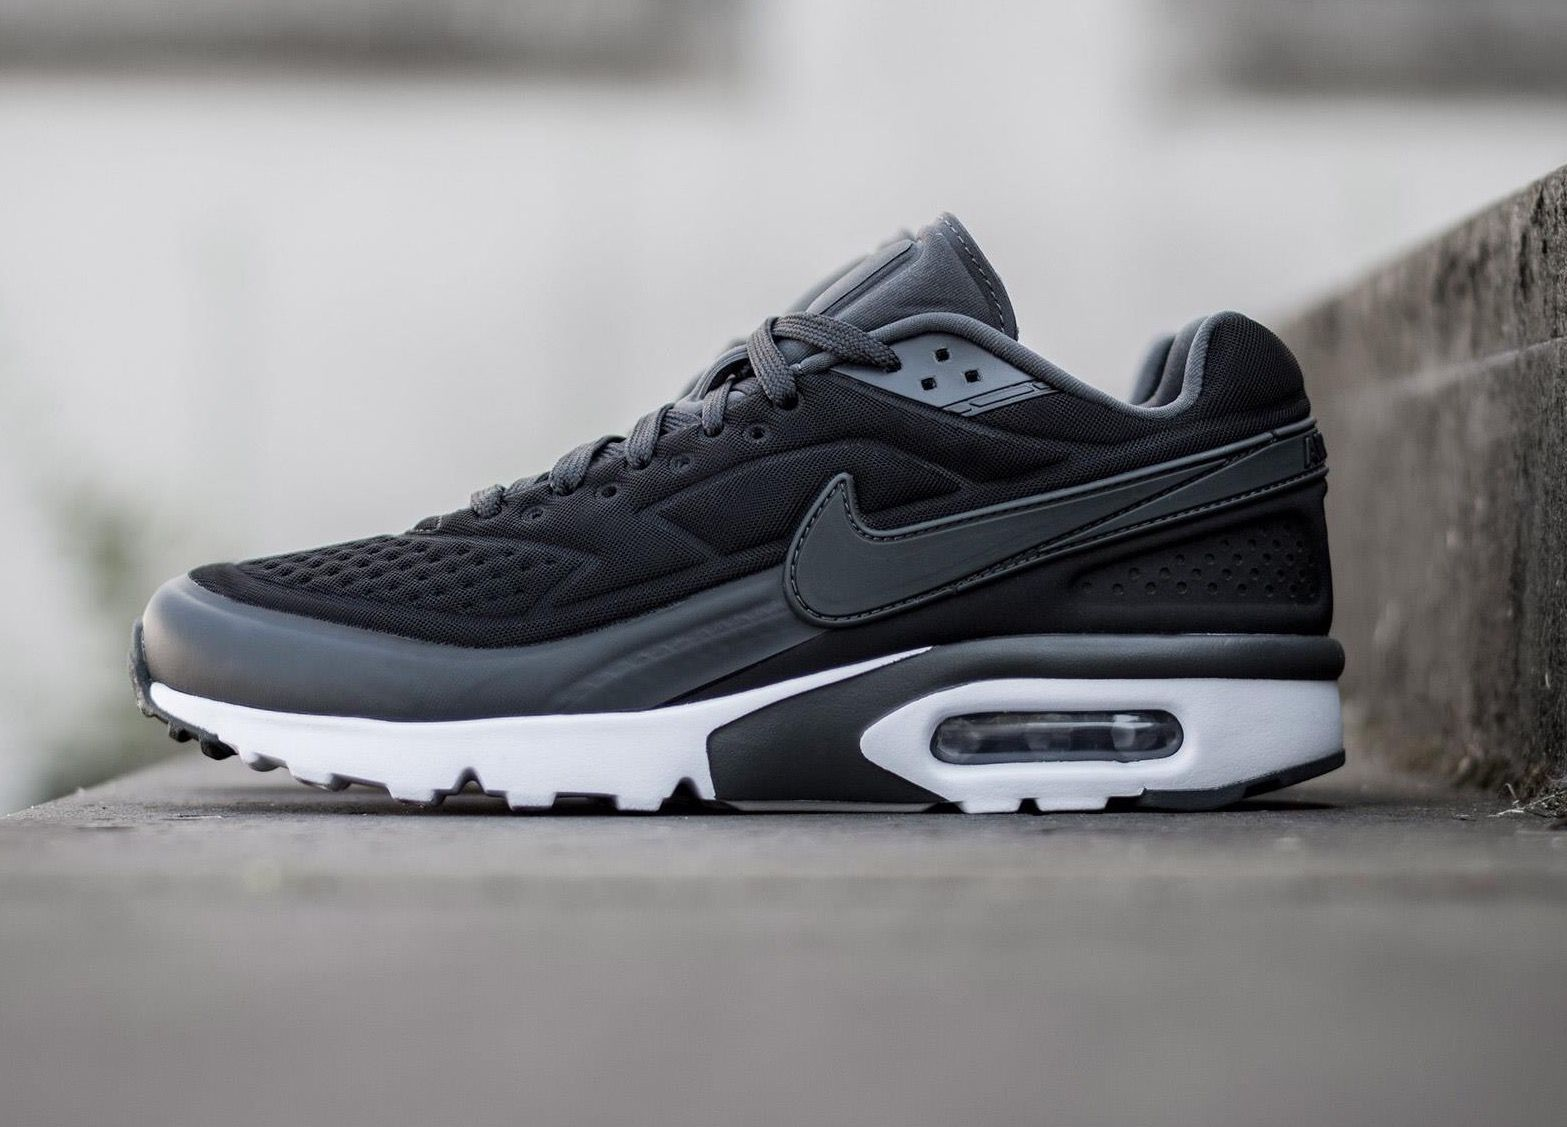 2424d9a2ac Nike Air Classic BW Ultra: Black/Grey | shoes in 2019 | Air max ...